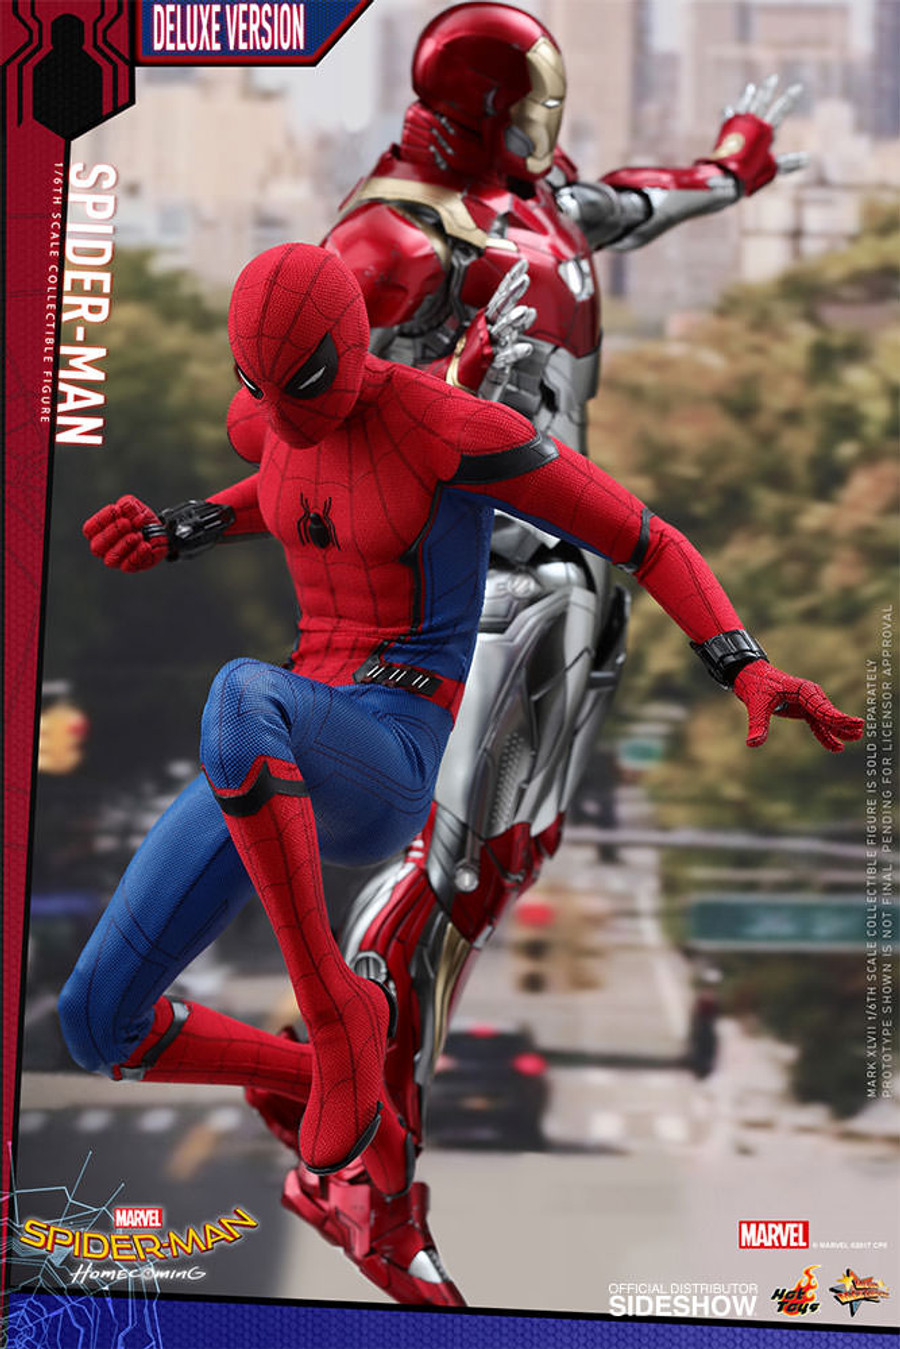 Hot Toys - Spider-Man: Homecoming Deluxe Version